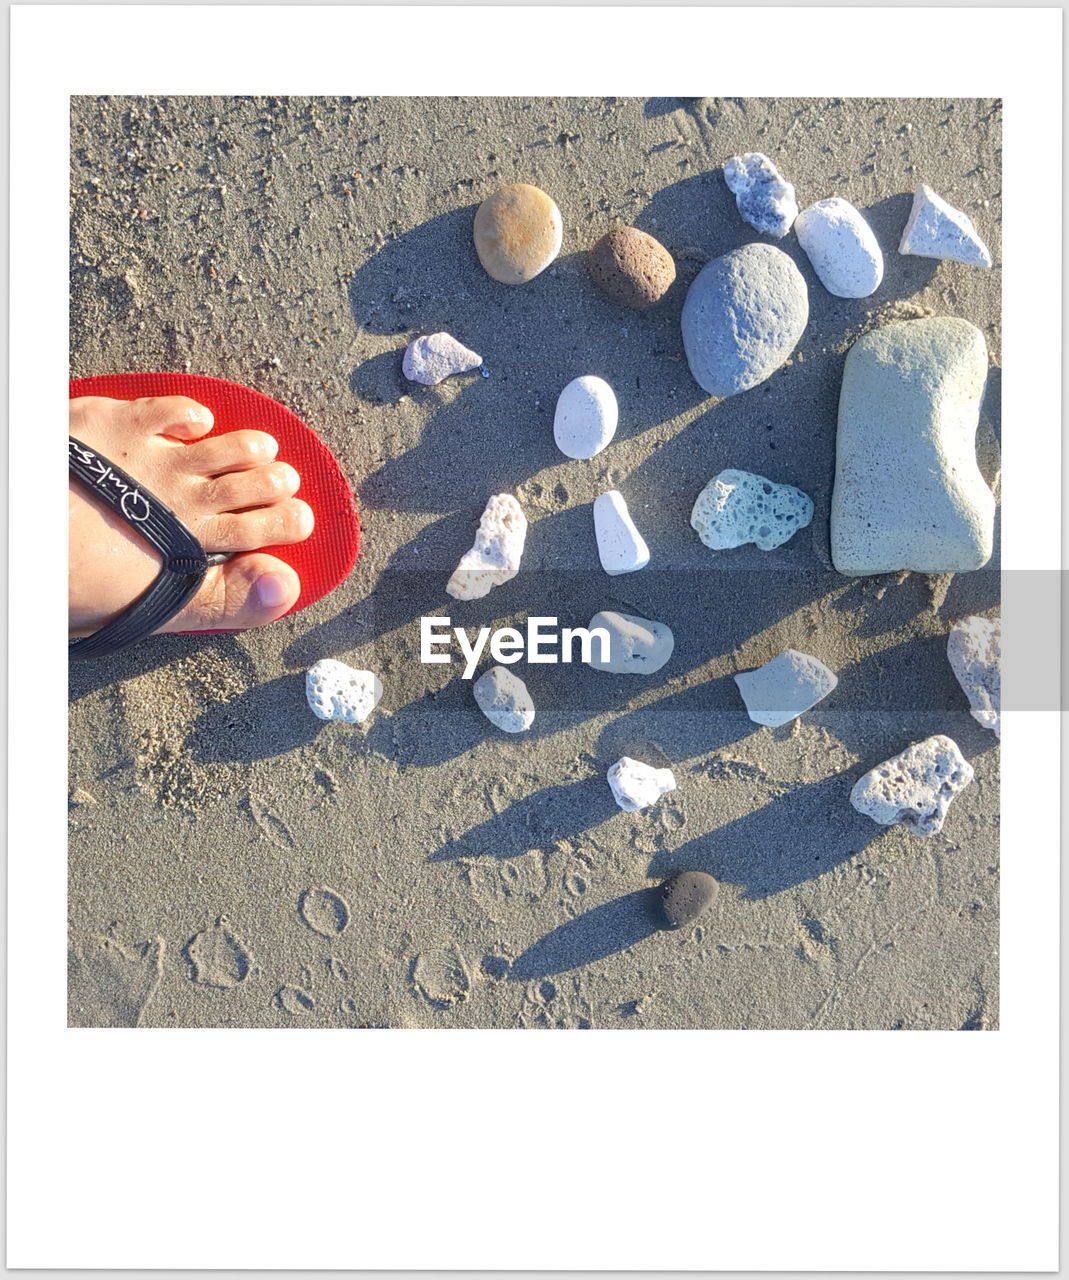 sand, human body part, beach, human hand, day, outdoors, human leg, real people, one person, sunlight, low section, childhood, nail polish, people